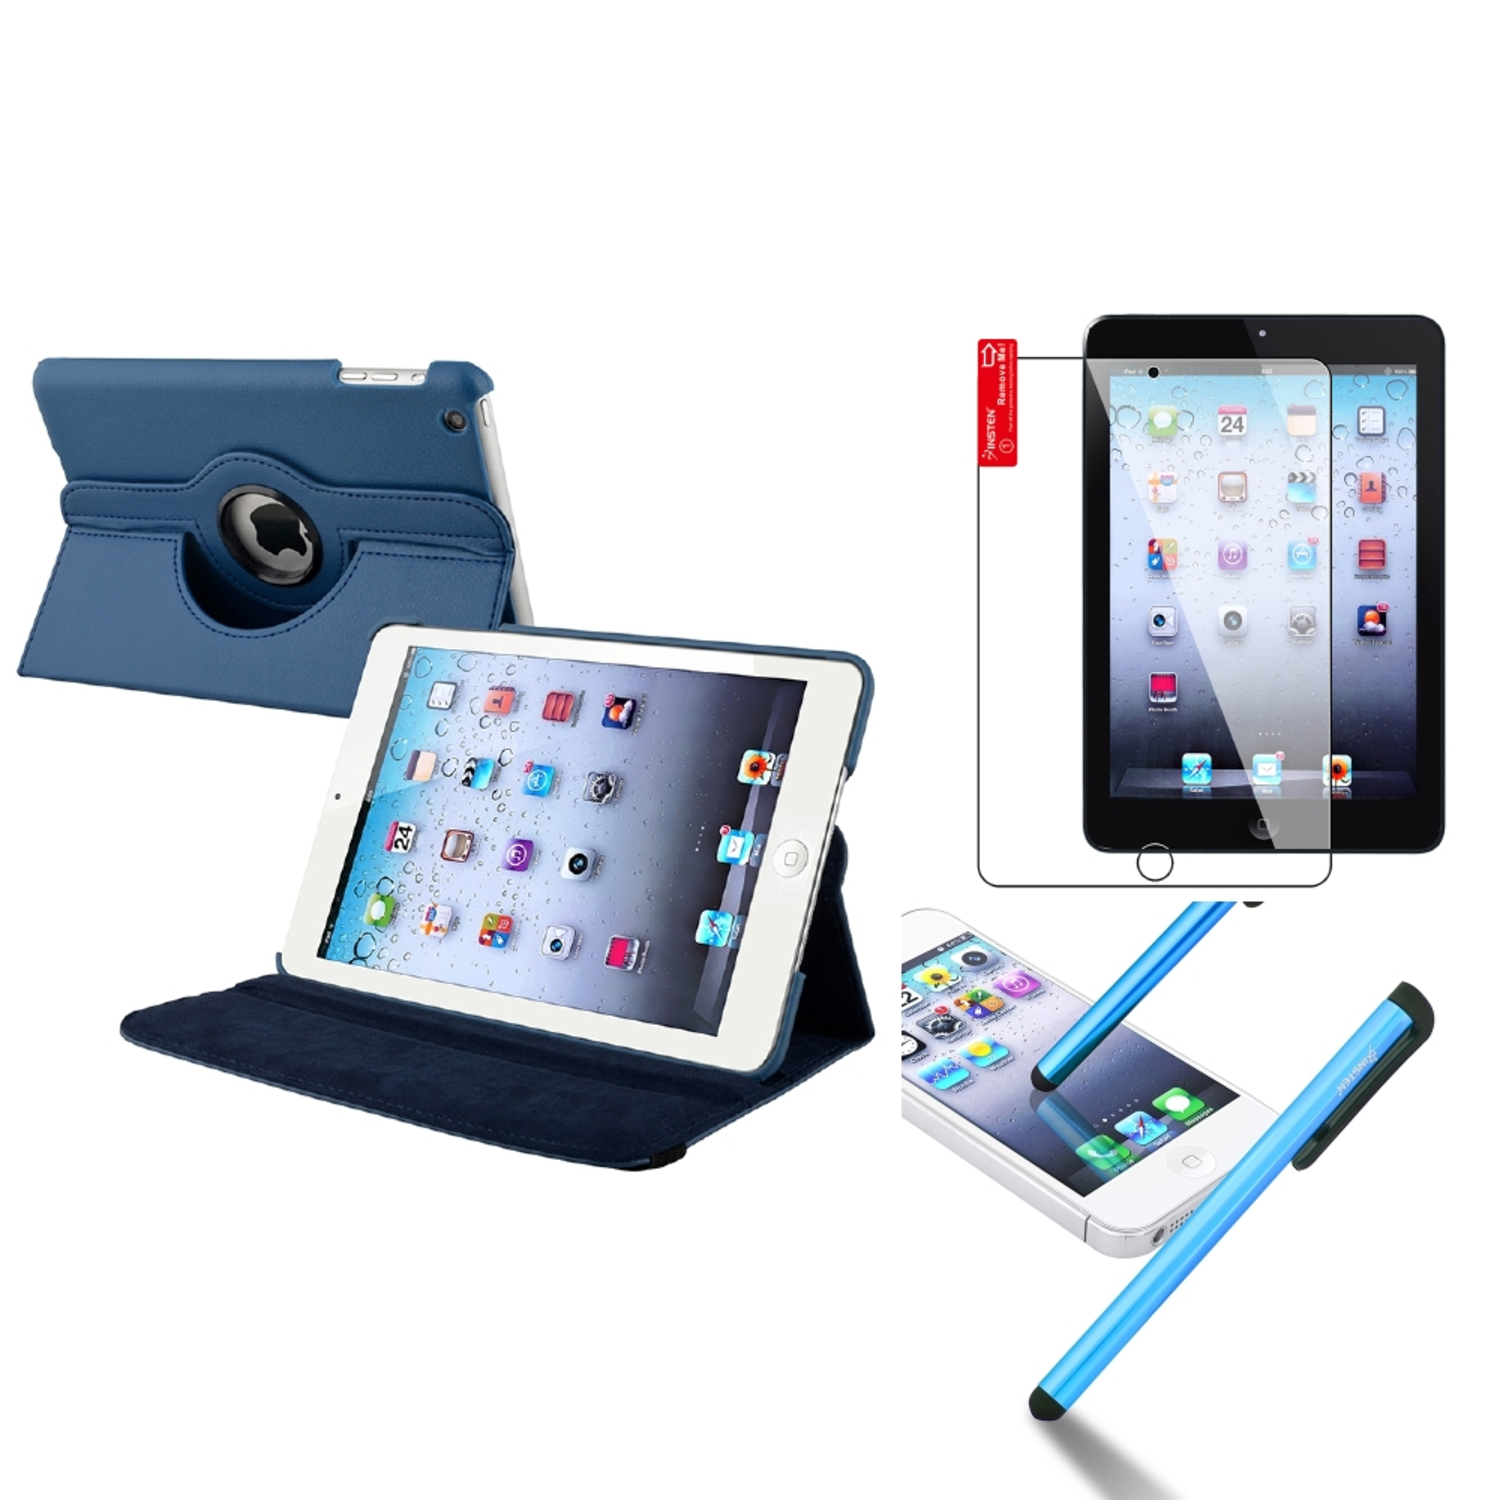 iPad Mini 3/2/1 Case, by Insten For Apple iPad Mini 3rd 3 2nd 1 1st Gen Rotating Leather Case Cover Stand Navy Blue